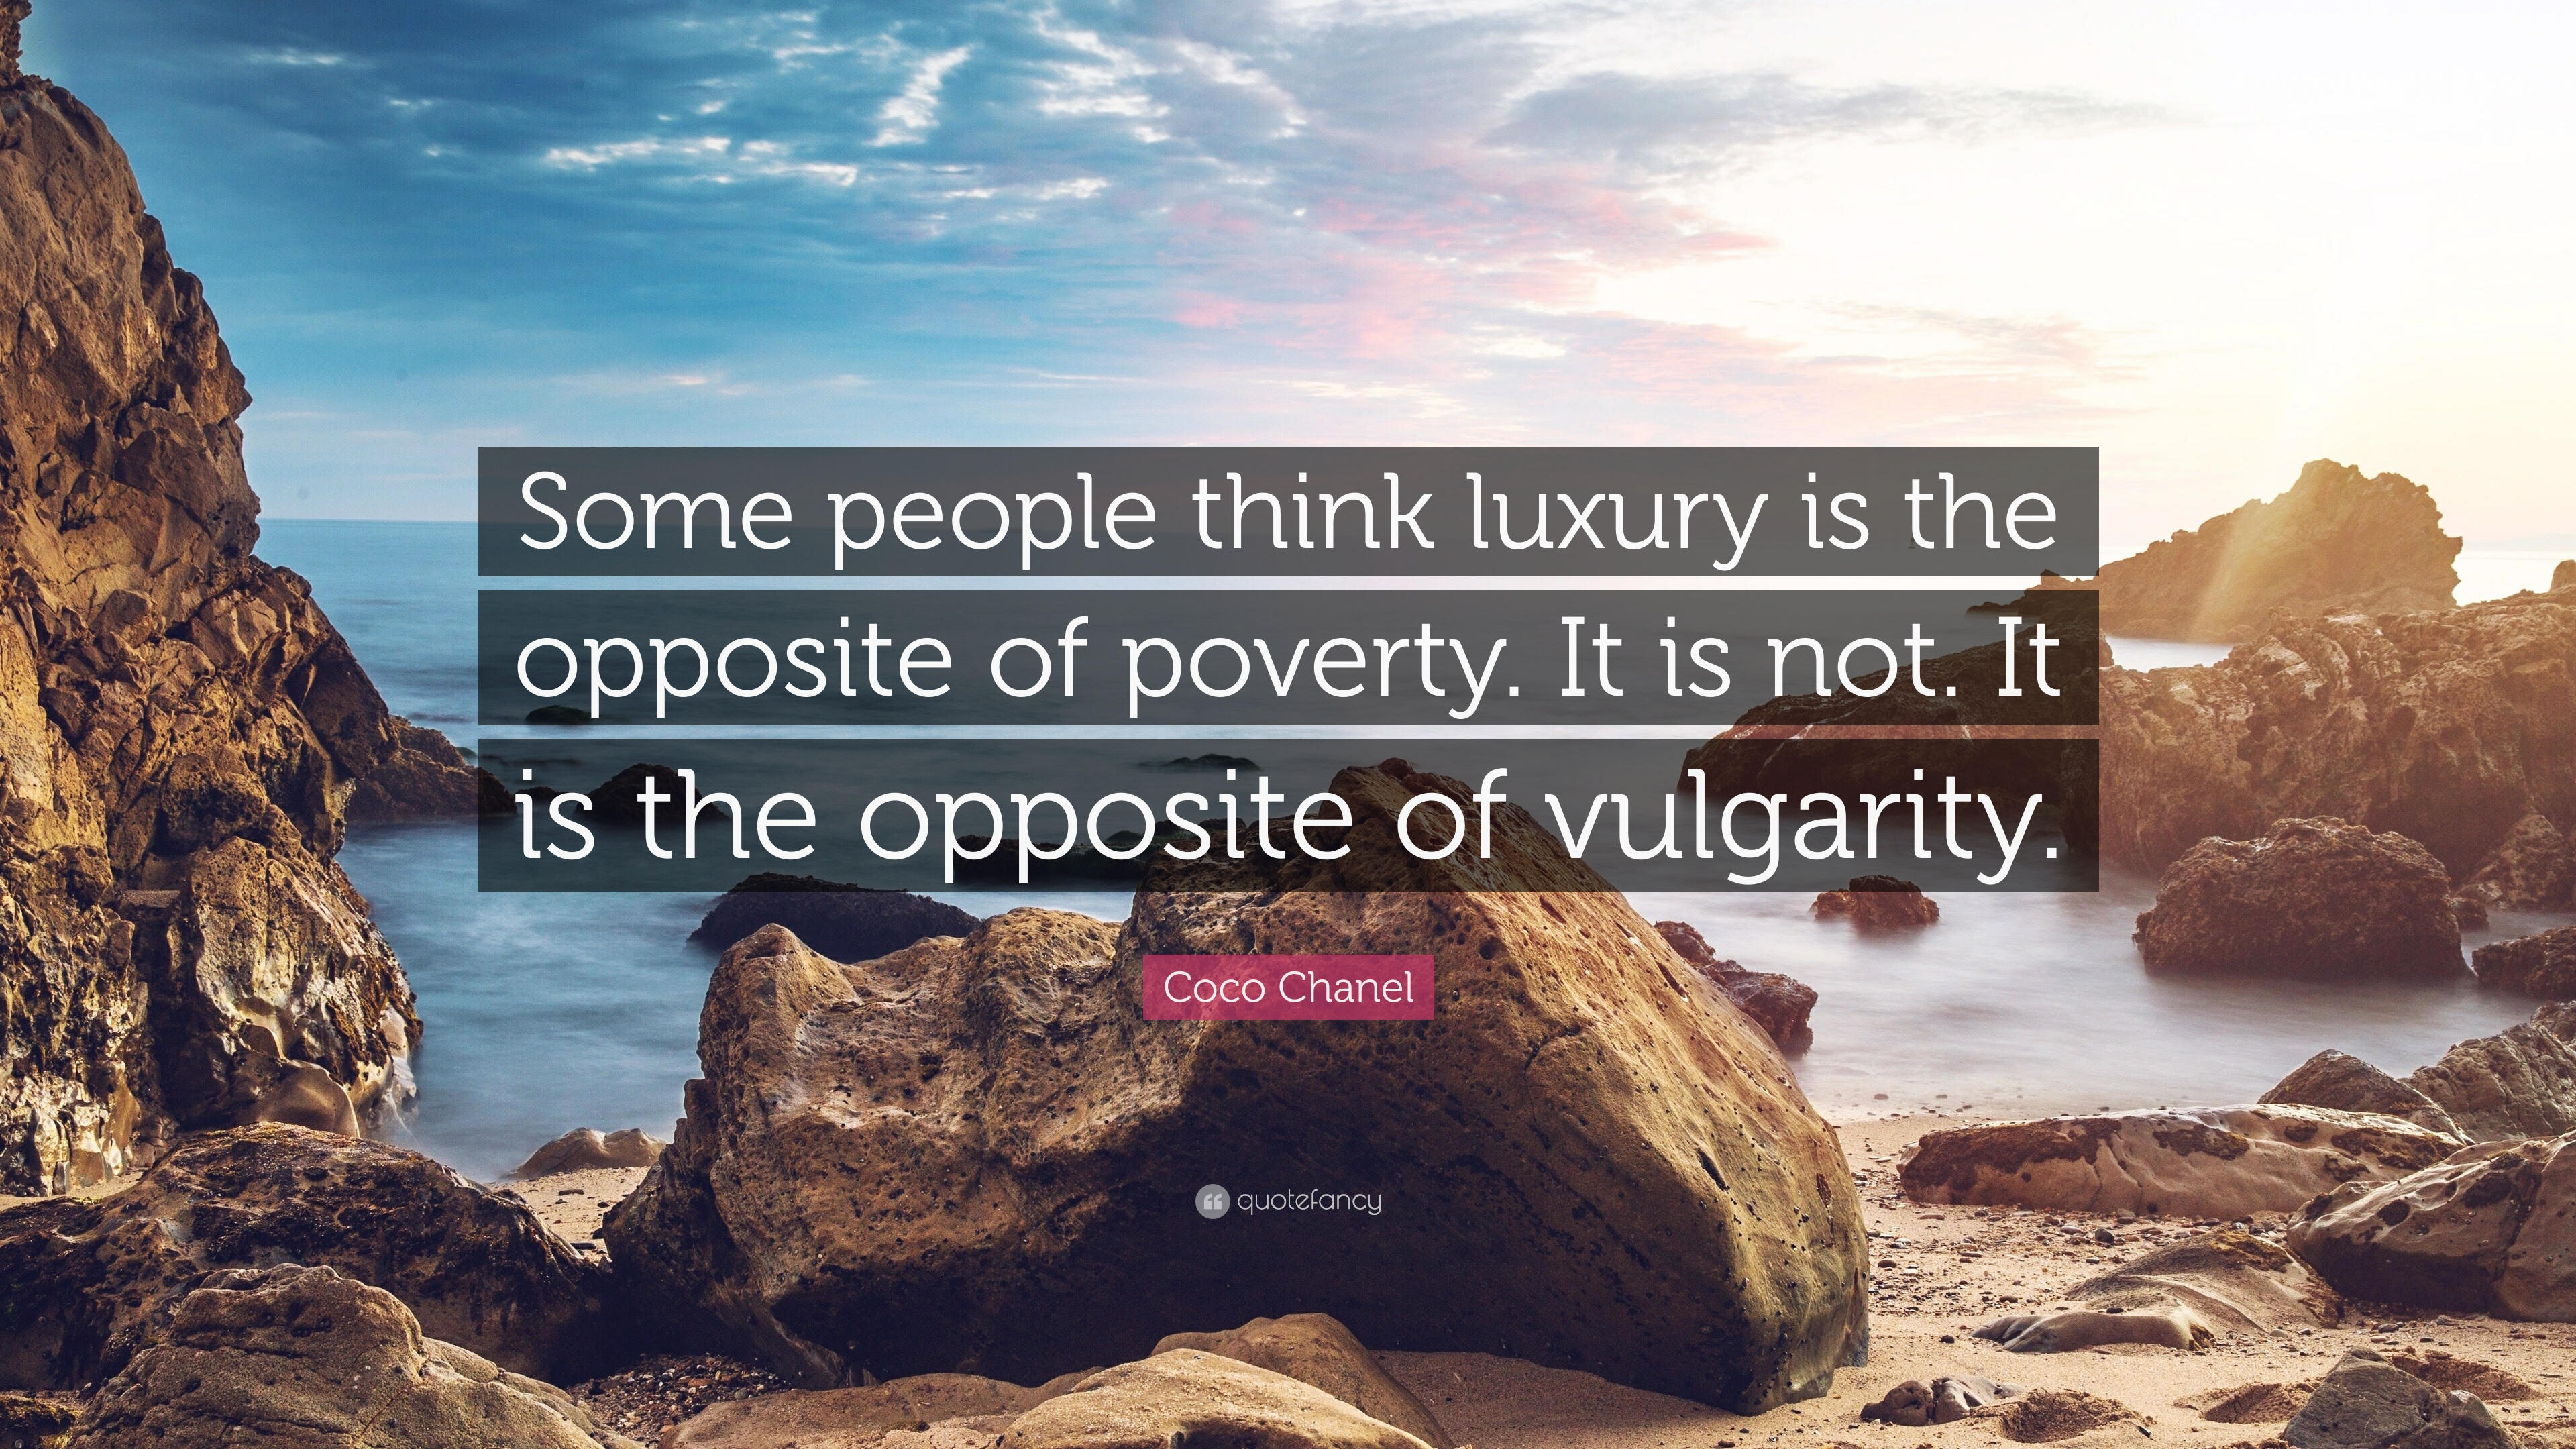 Coco Chanel Quote: U201cSome People Think Luxury Is The Opposite Of Poverty. It